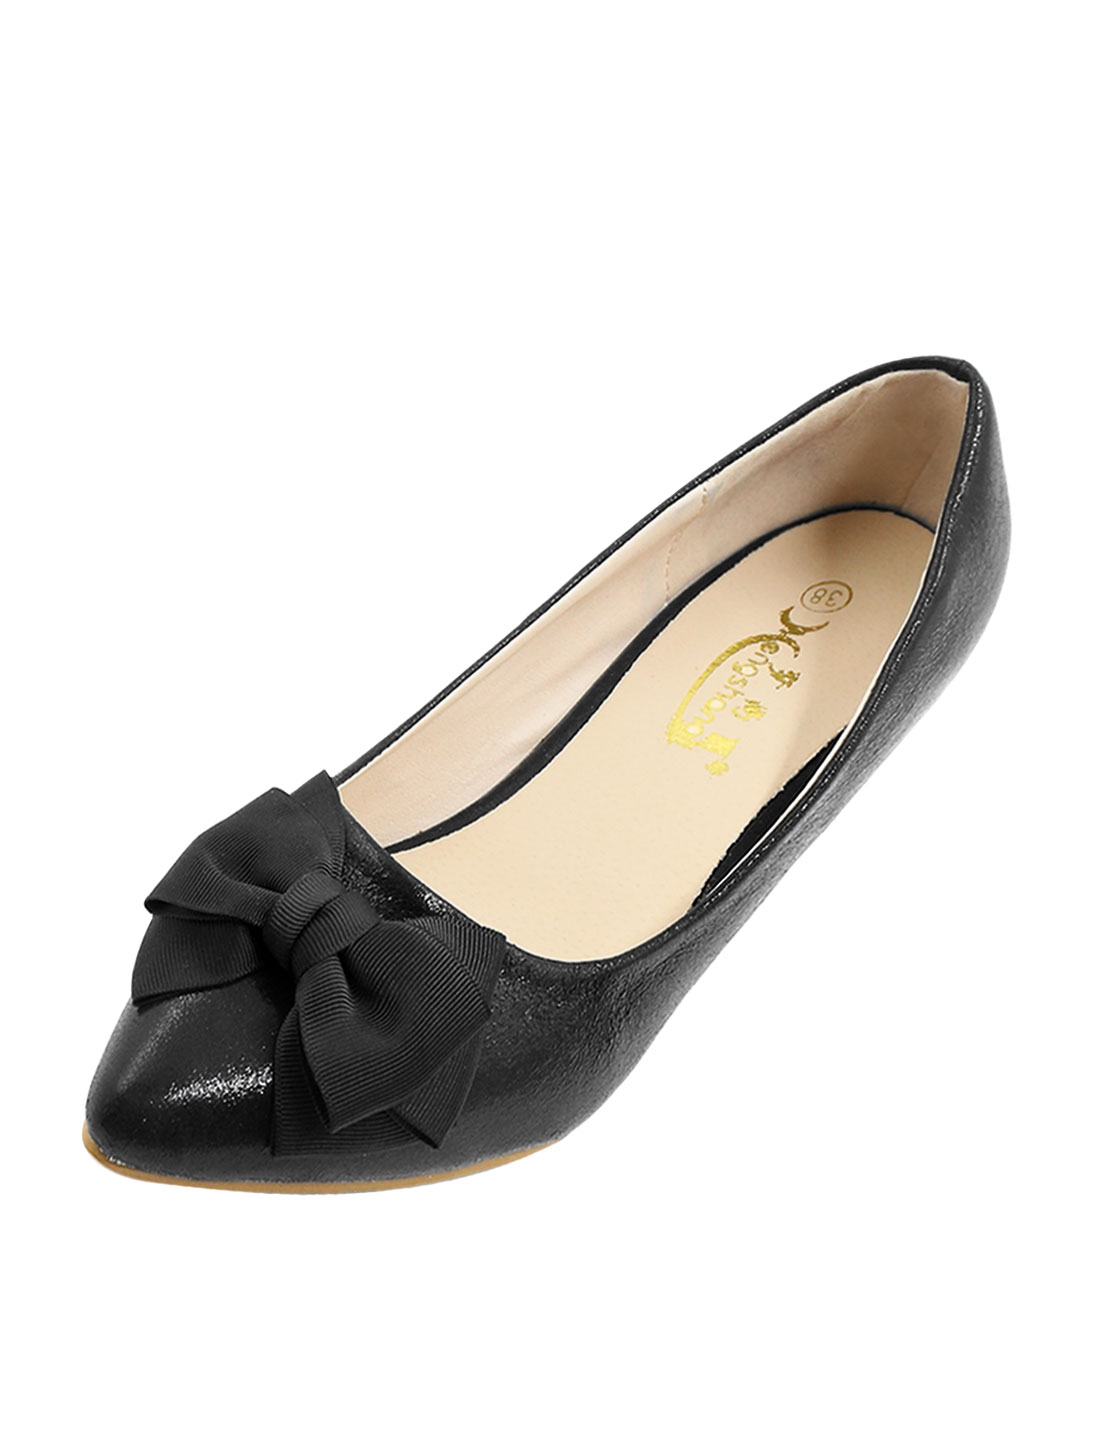 Lady Pointed Toe Kitten Heel Shiny Bowknot Pumps Black US 8.5